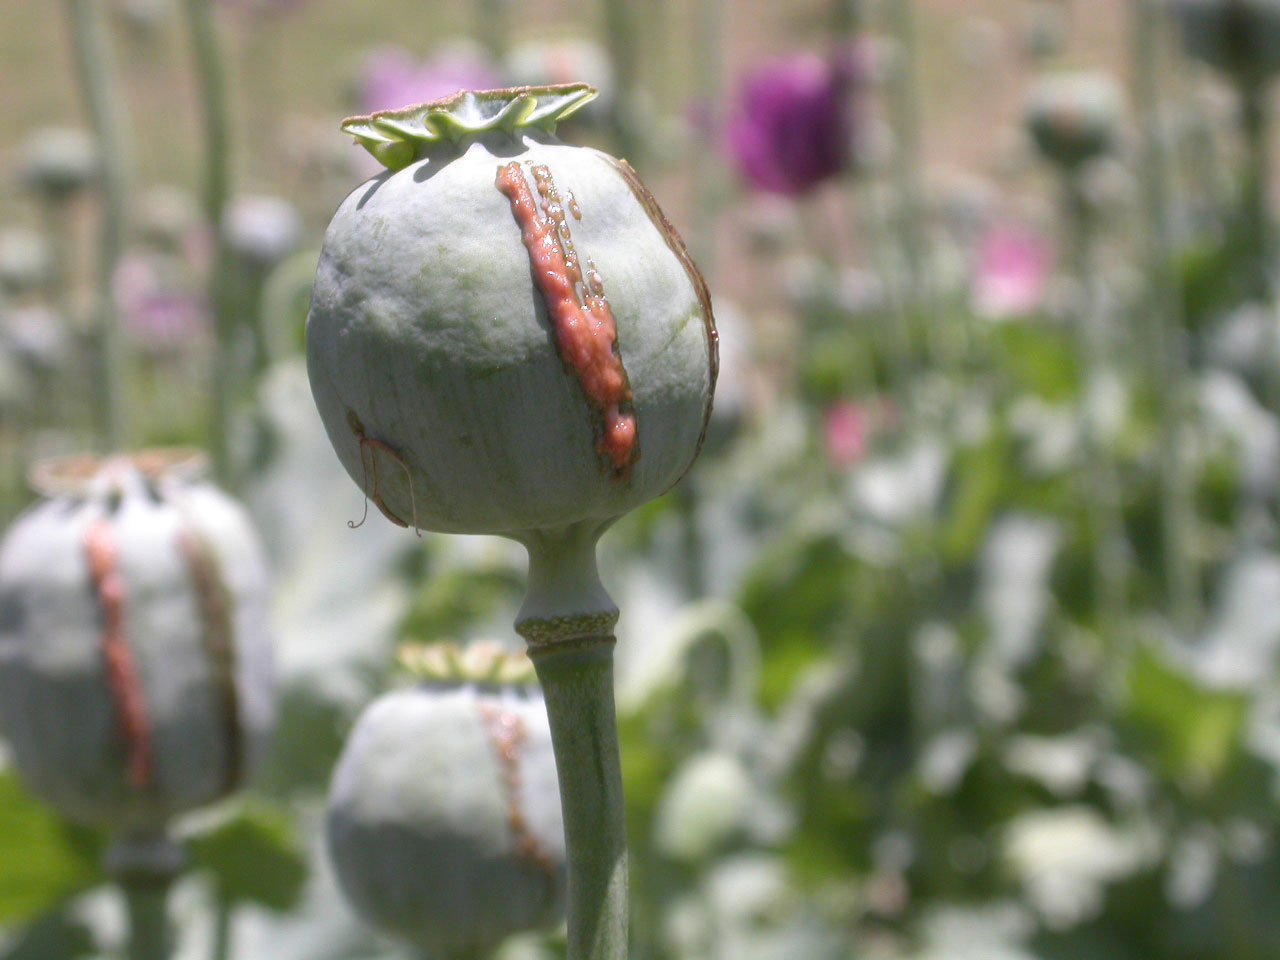 The poppy capsule which is harvested, Afghanistan, 2 August 2004. As soon as the capsule is lanced the heroin sap starts to emerge